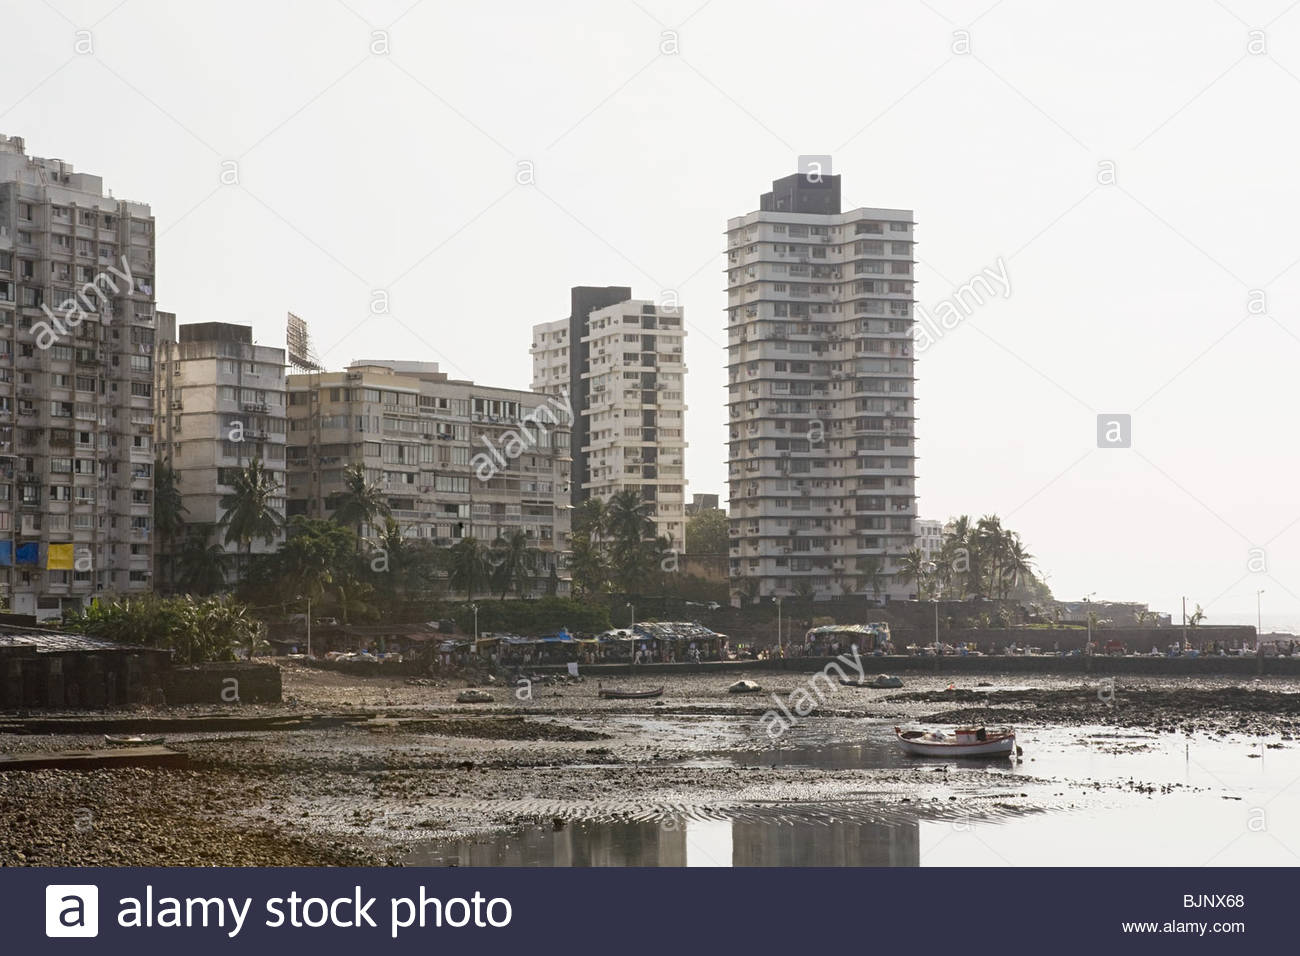 Multistorey structures and a beach - Stock Image